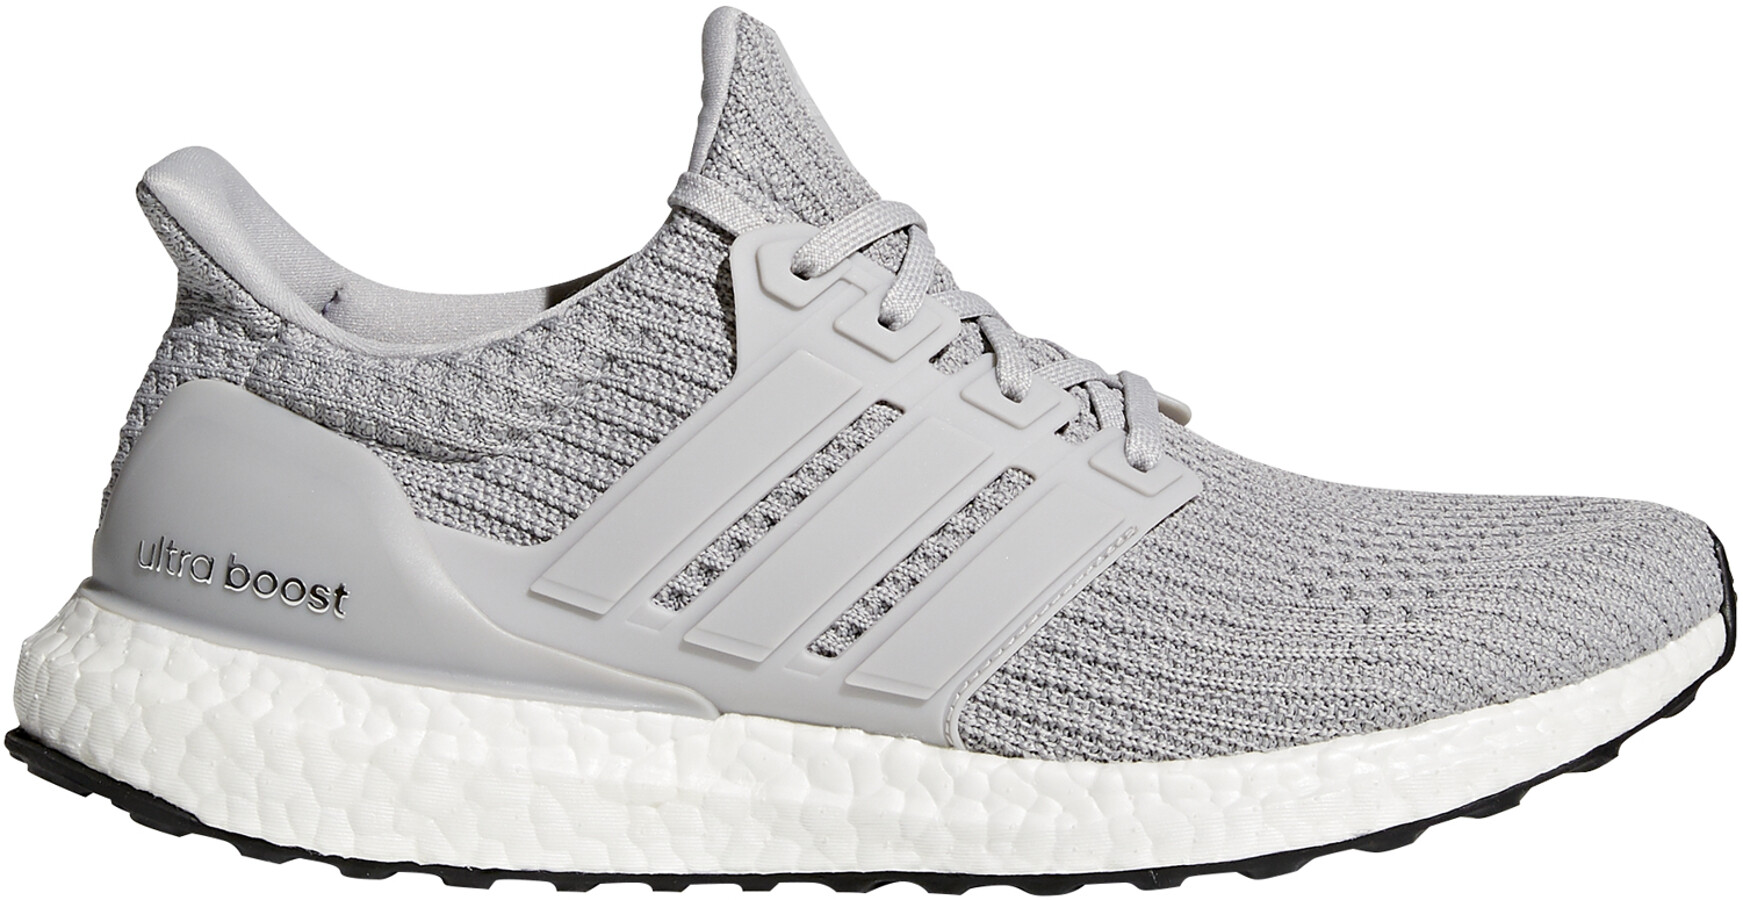 reputable site 8b47f 7ec1c adidas UltraBoost - Chaussures running Homme - gris